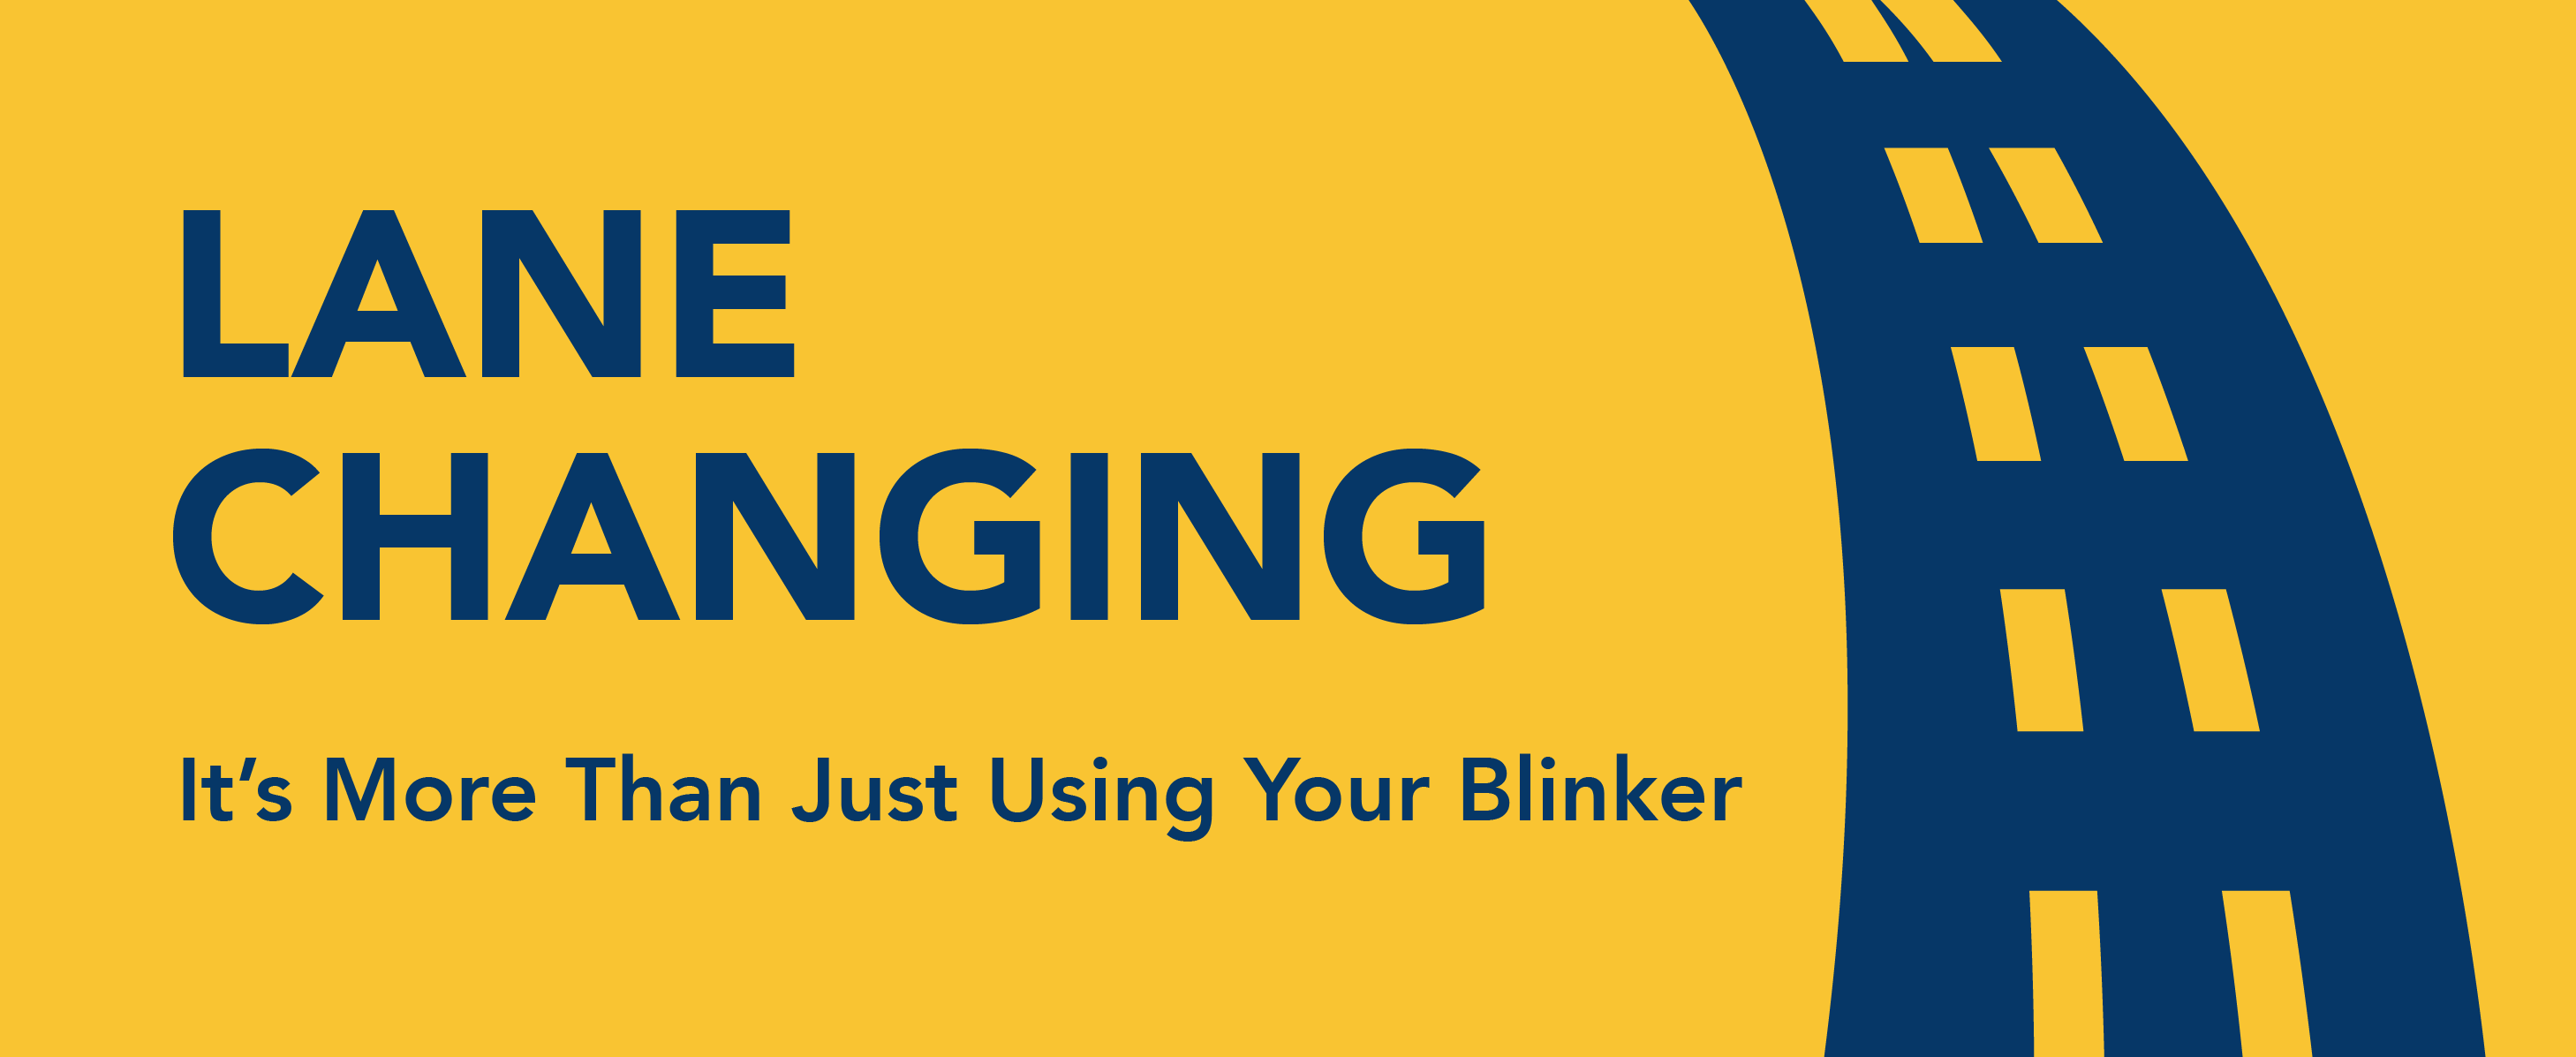 Lane changing: It's more than Just Using Your Blinker